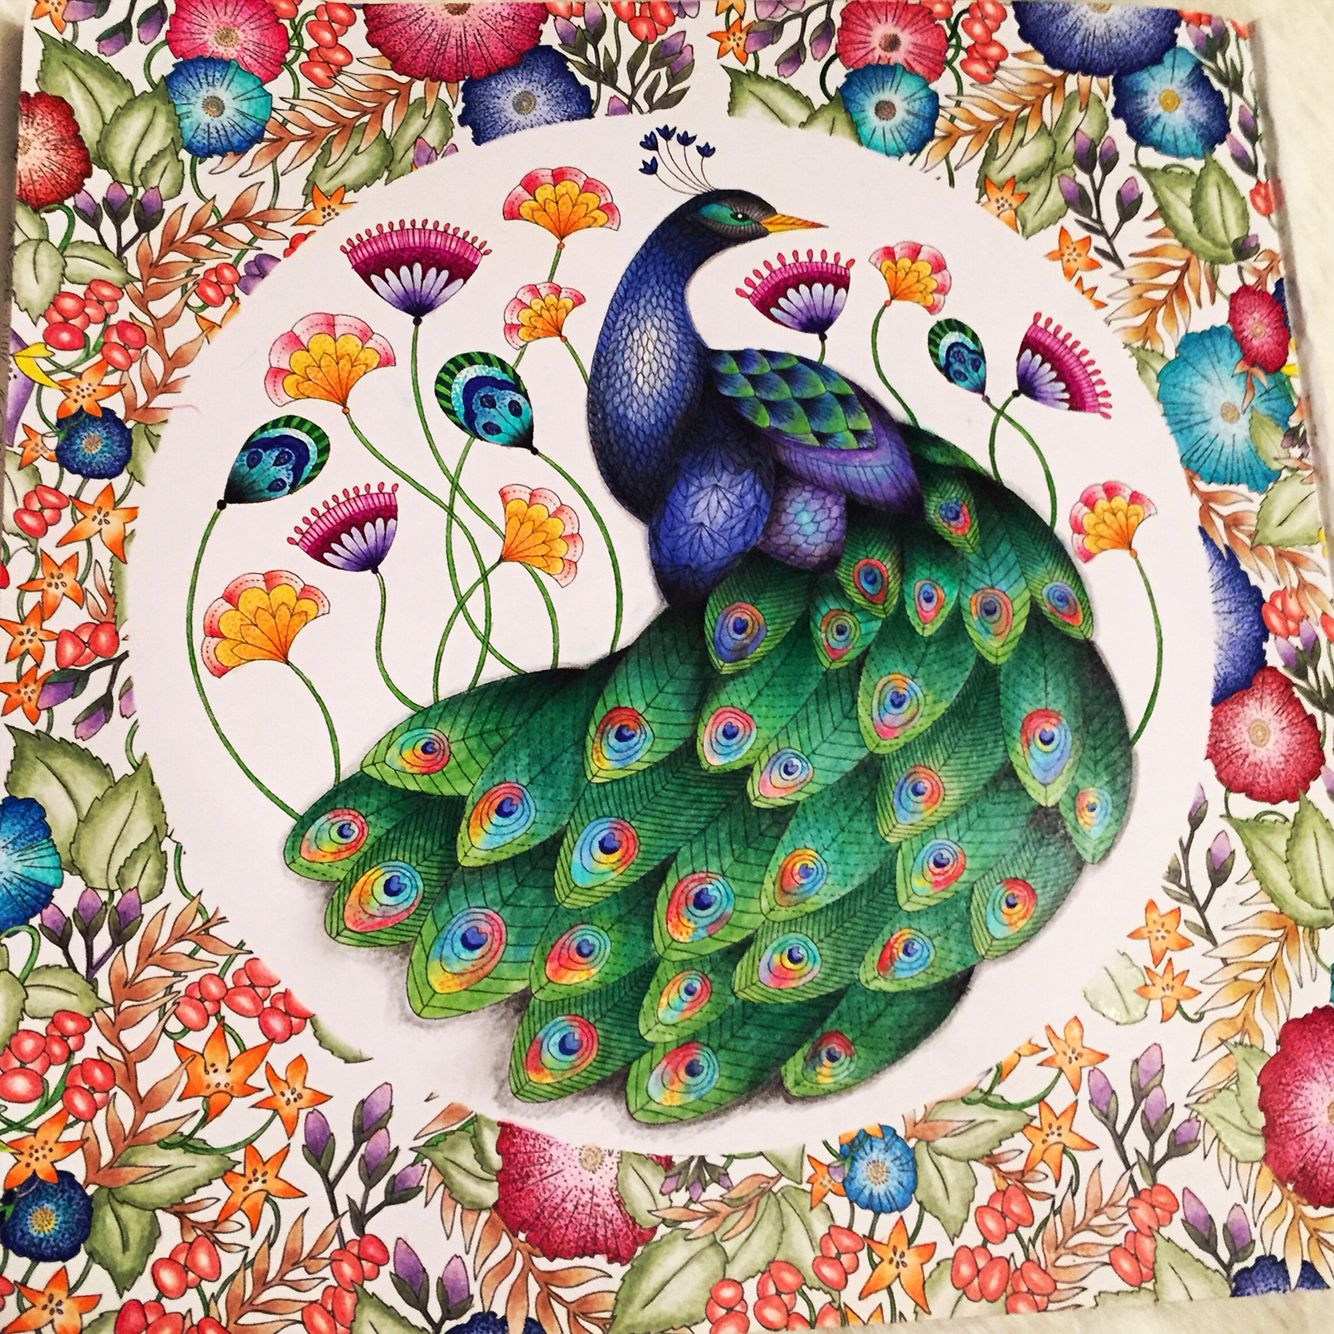 Finished Peacock From The Millie Marotta Animal Kingdom Colouring Book By Instagram Millie Marotta Coloring Book Animal Kingdom Colouring Book Coloring Books